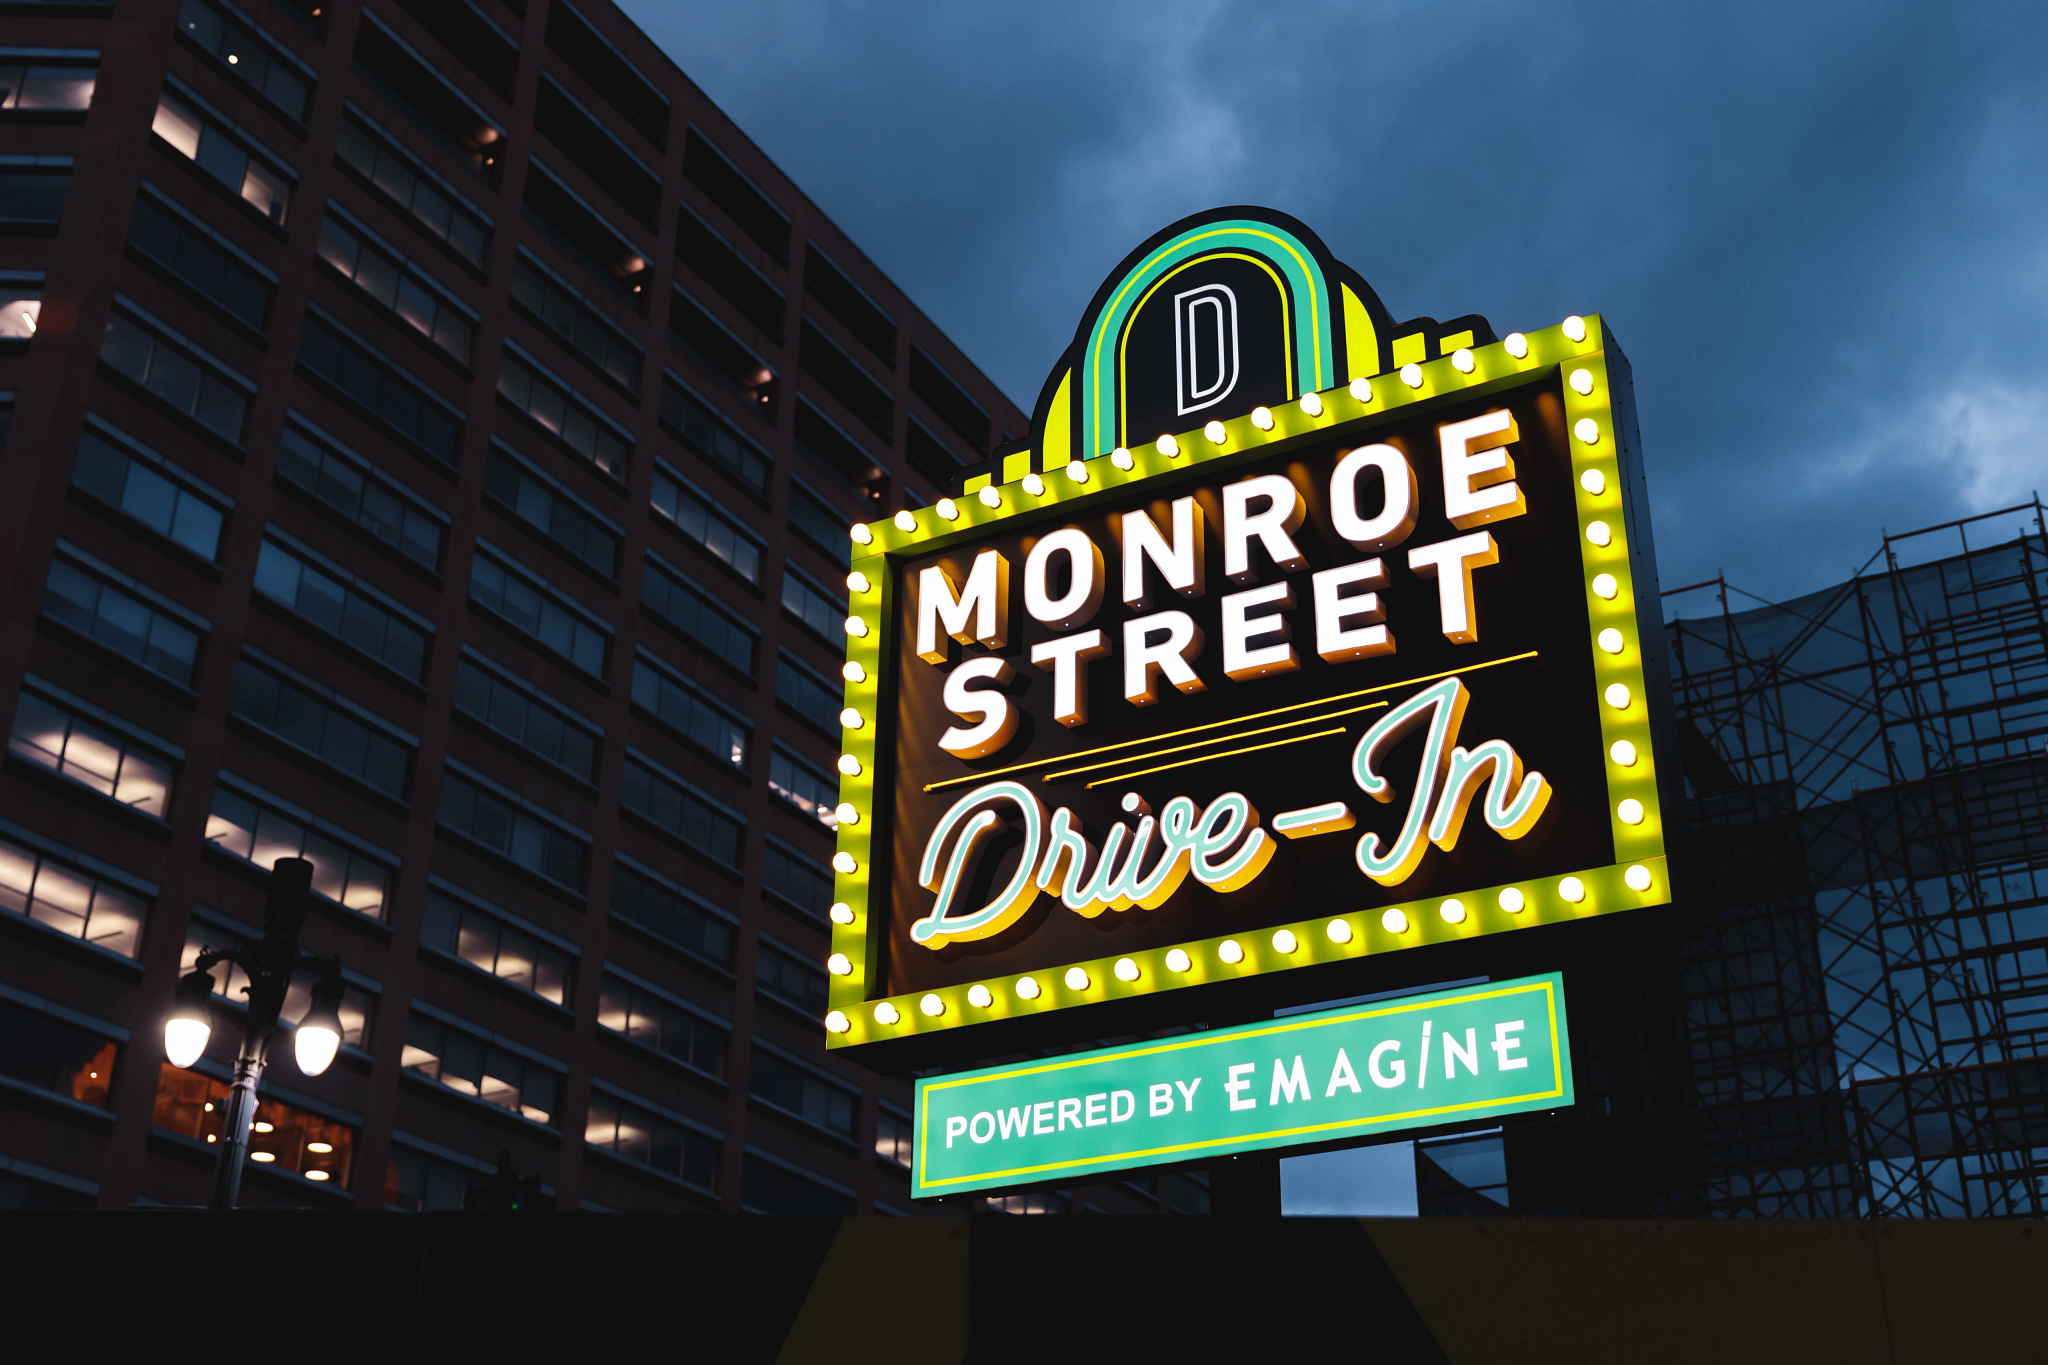 Green and yellow neon light up the sign for the Monroe Street Drive-In movie theater in downtown Detroit.